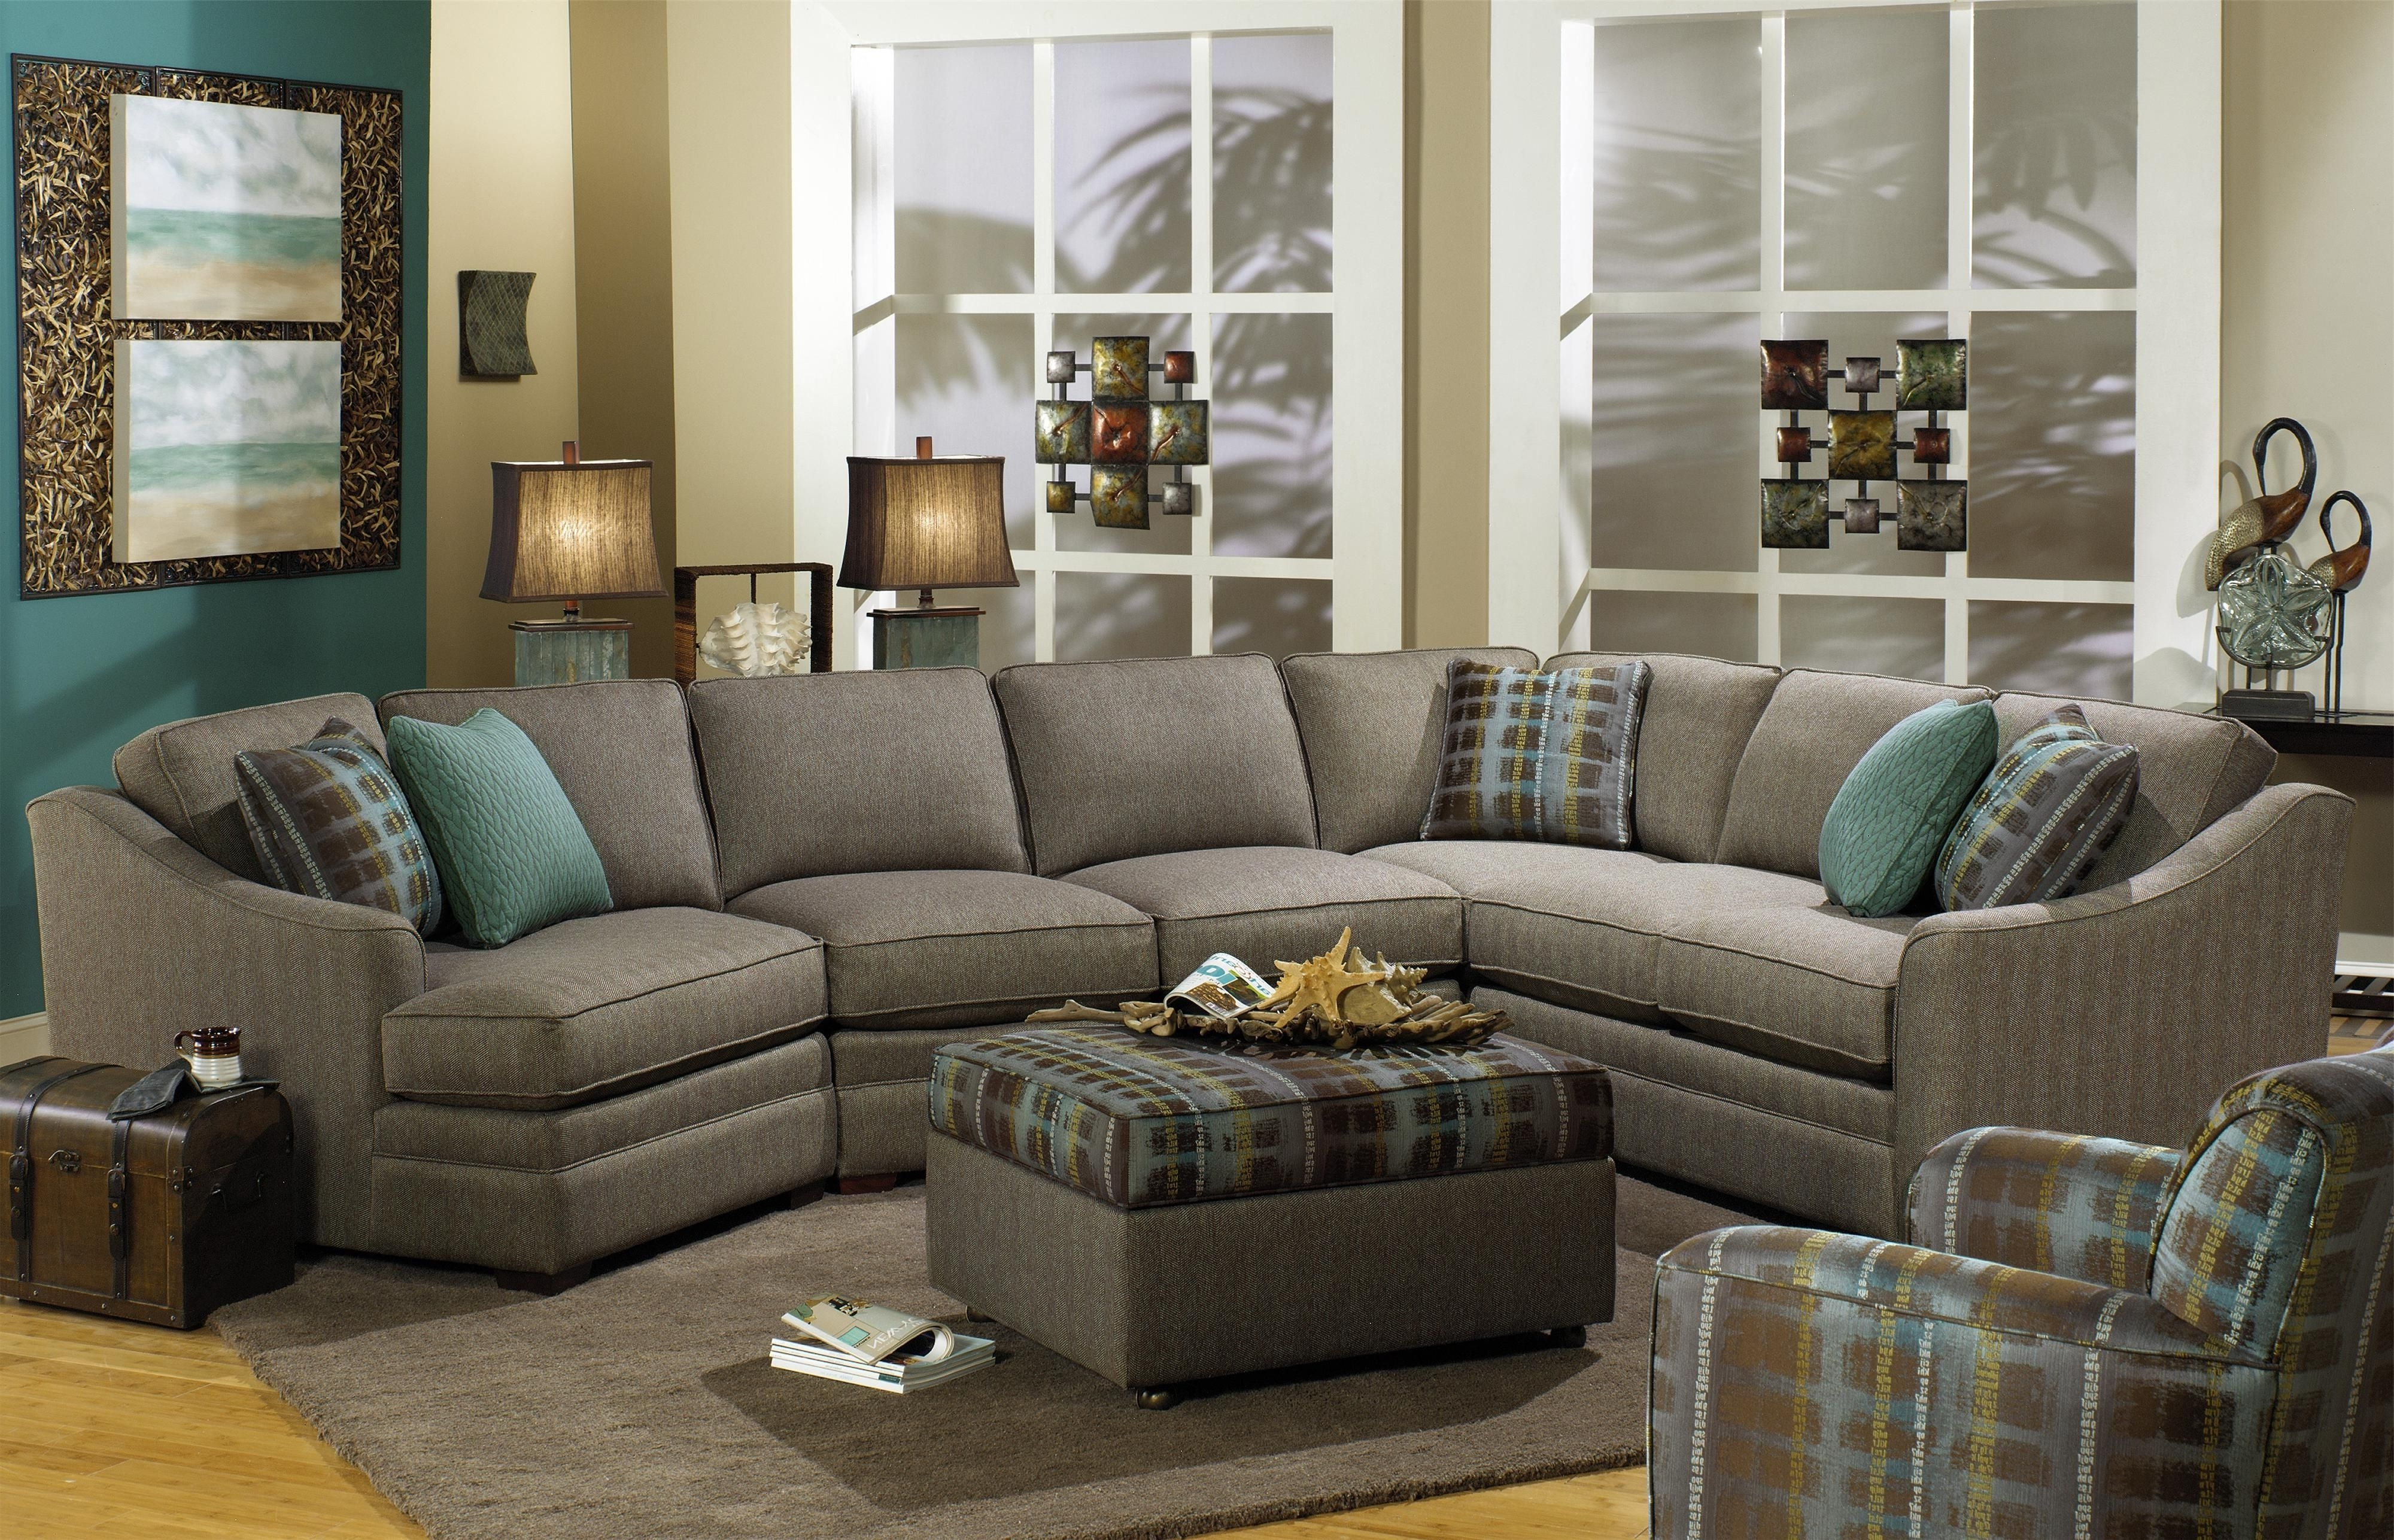 Killeen Tx Sectional Sofas with regard to Latest F9 Custom Collection Customizable 3-Piece Sectional With Laf